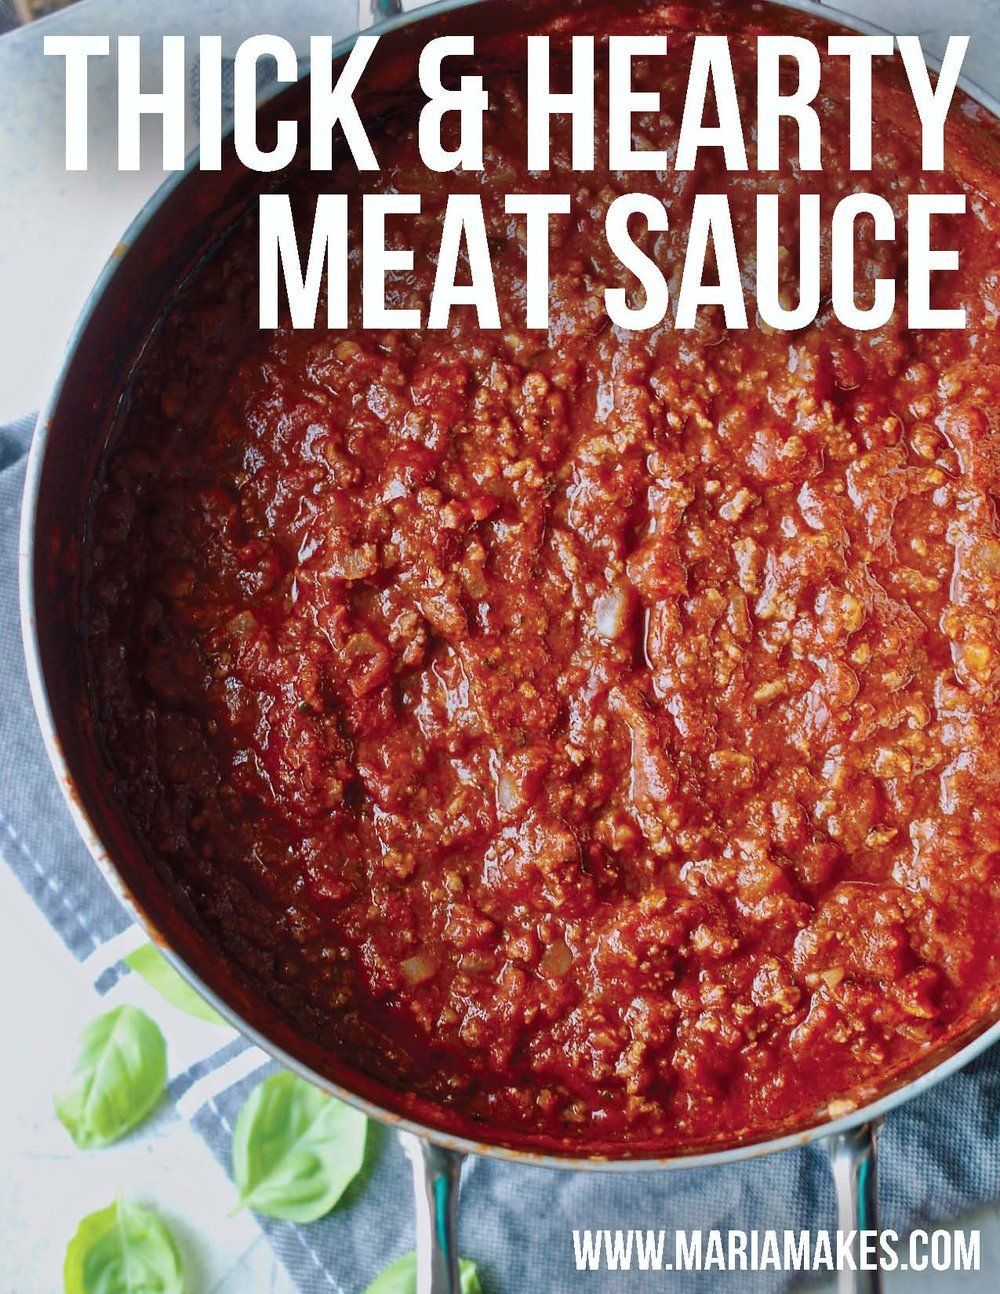 Thick & Hearty Meat Sauce — Maria Makes | Wholesome, Simple Recipes for Every Day -  Thick & Hearty Meat Sauce – Maria Makes: No frills, everyday, weeknight-friendly, good 'ol meat - #bestrecipes #copycatrecipes #cupcakerecipes #Day #hearty #makes #maria #Meat #mexicanrecipes #recipes #sauce #simple #southernrecipes #spaghettirecipes #thick #vegetablerecipes #wholesome